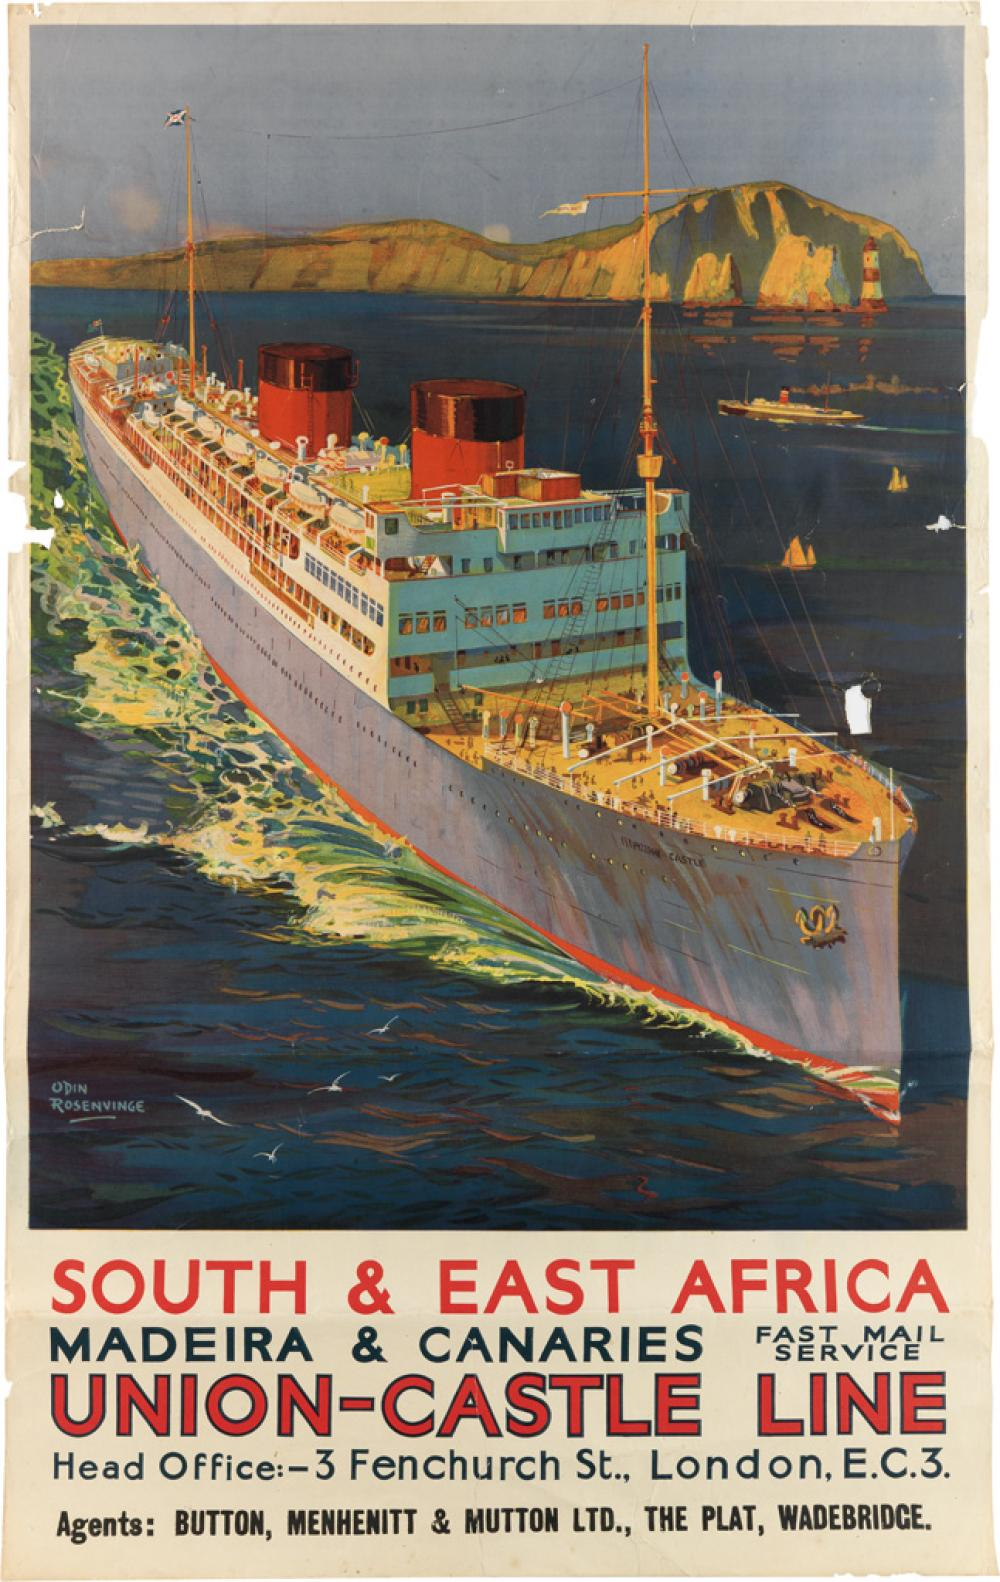 ODIN ROSENVINGE (1880-1957). SOUTH & EAST AFRICA / UNION - CASTLE LINE. Circa 1930s. 39x25 inches, 101x63 cm.